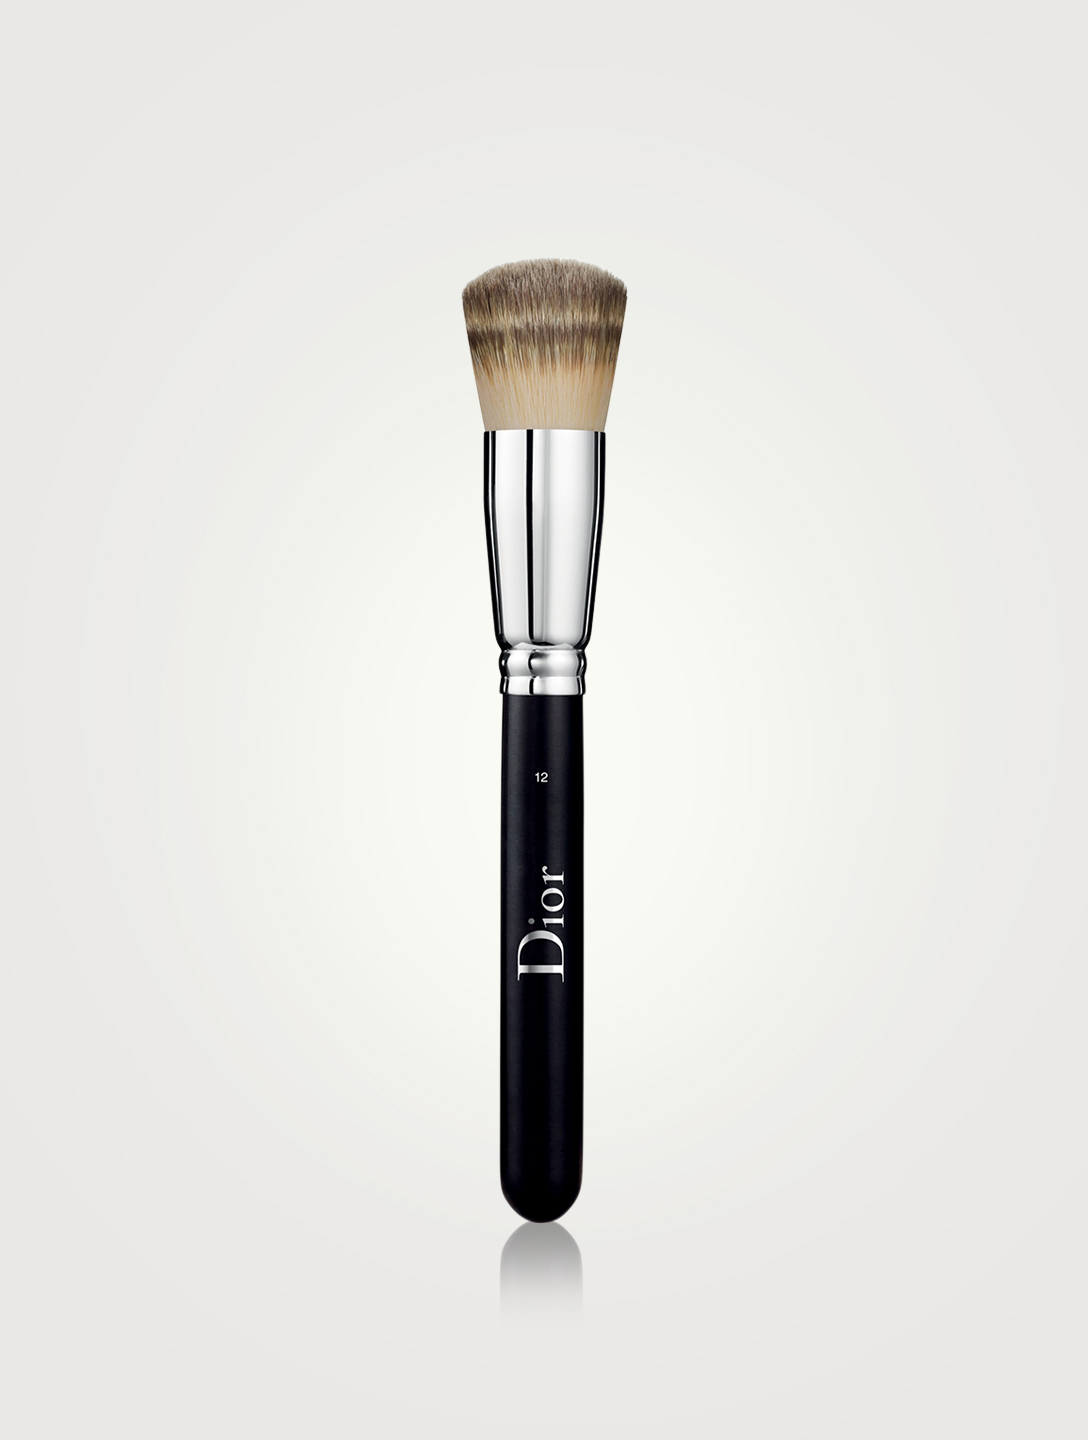 DIOR Dior Backstage Full Coverage Fluid Foundation Brush N° 12 Beauty